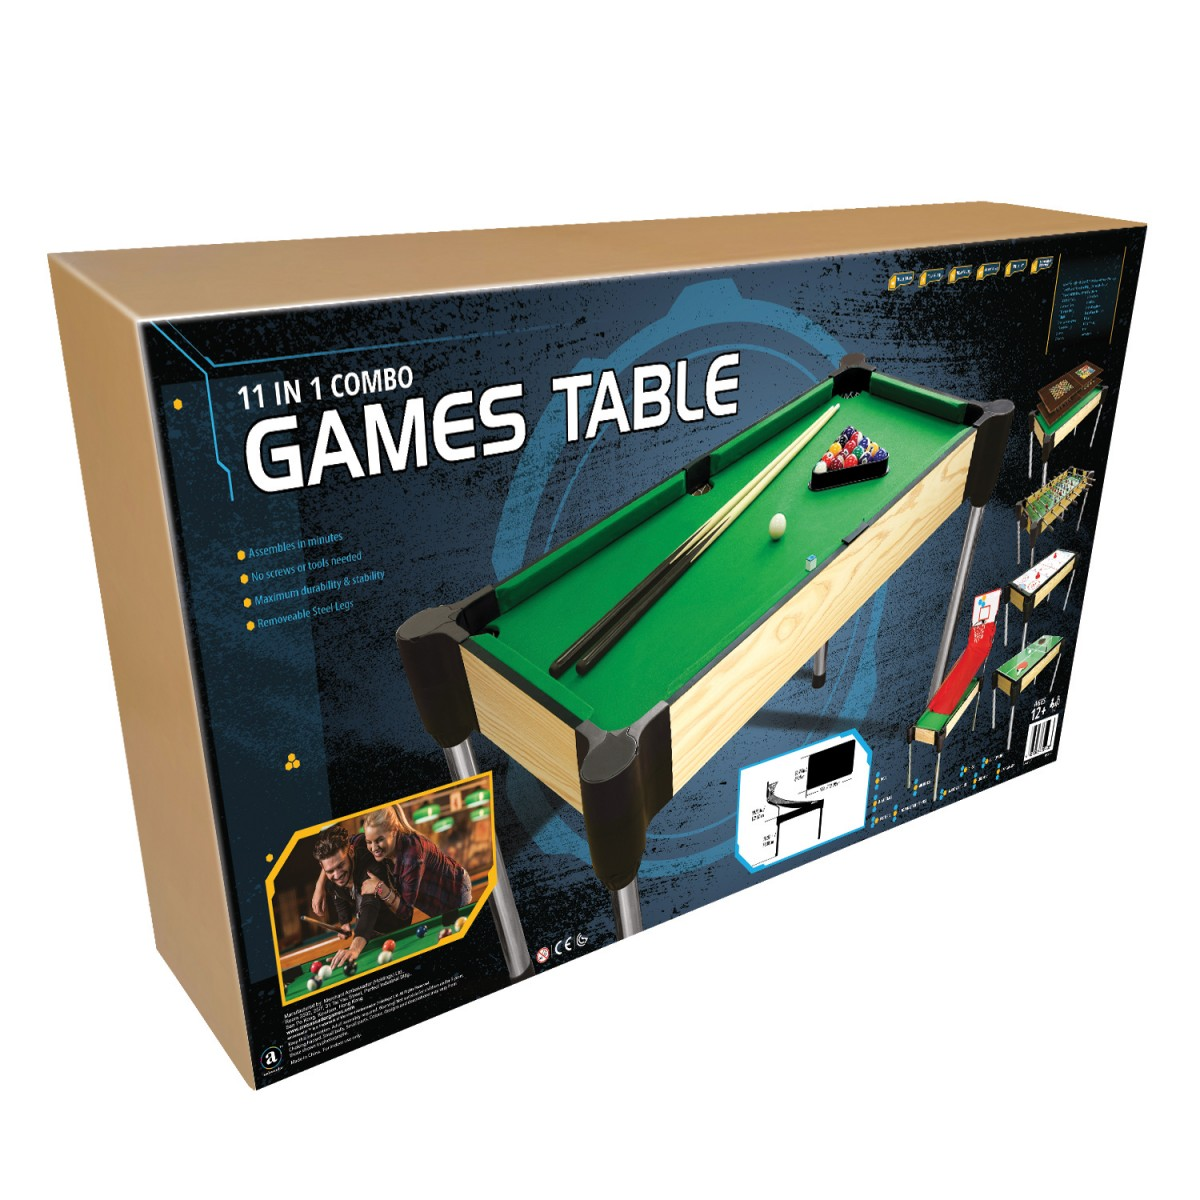 48 122cm 11 in 1 games table pool basketball table for 11 in 1 game table